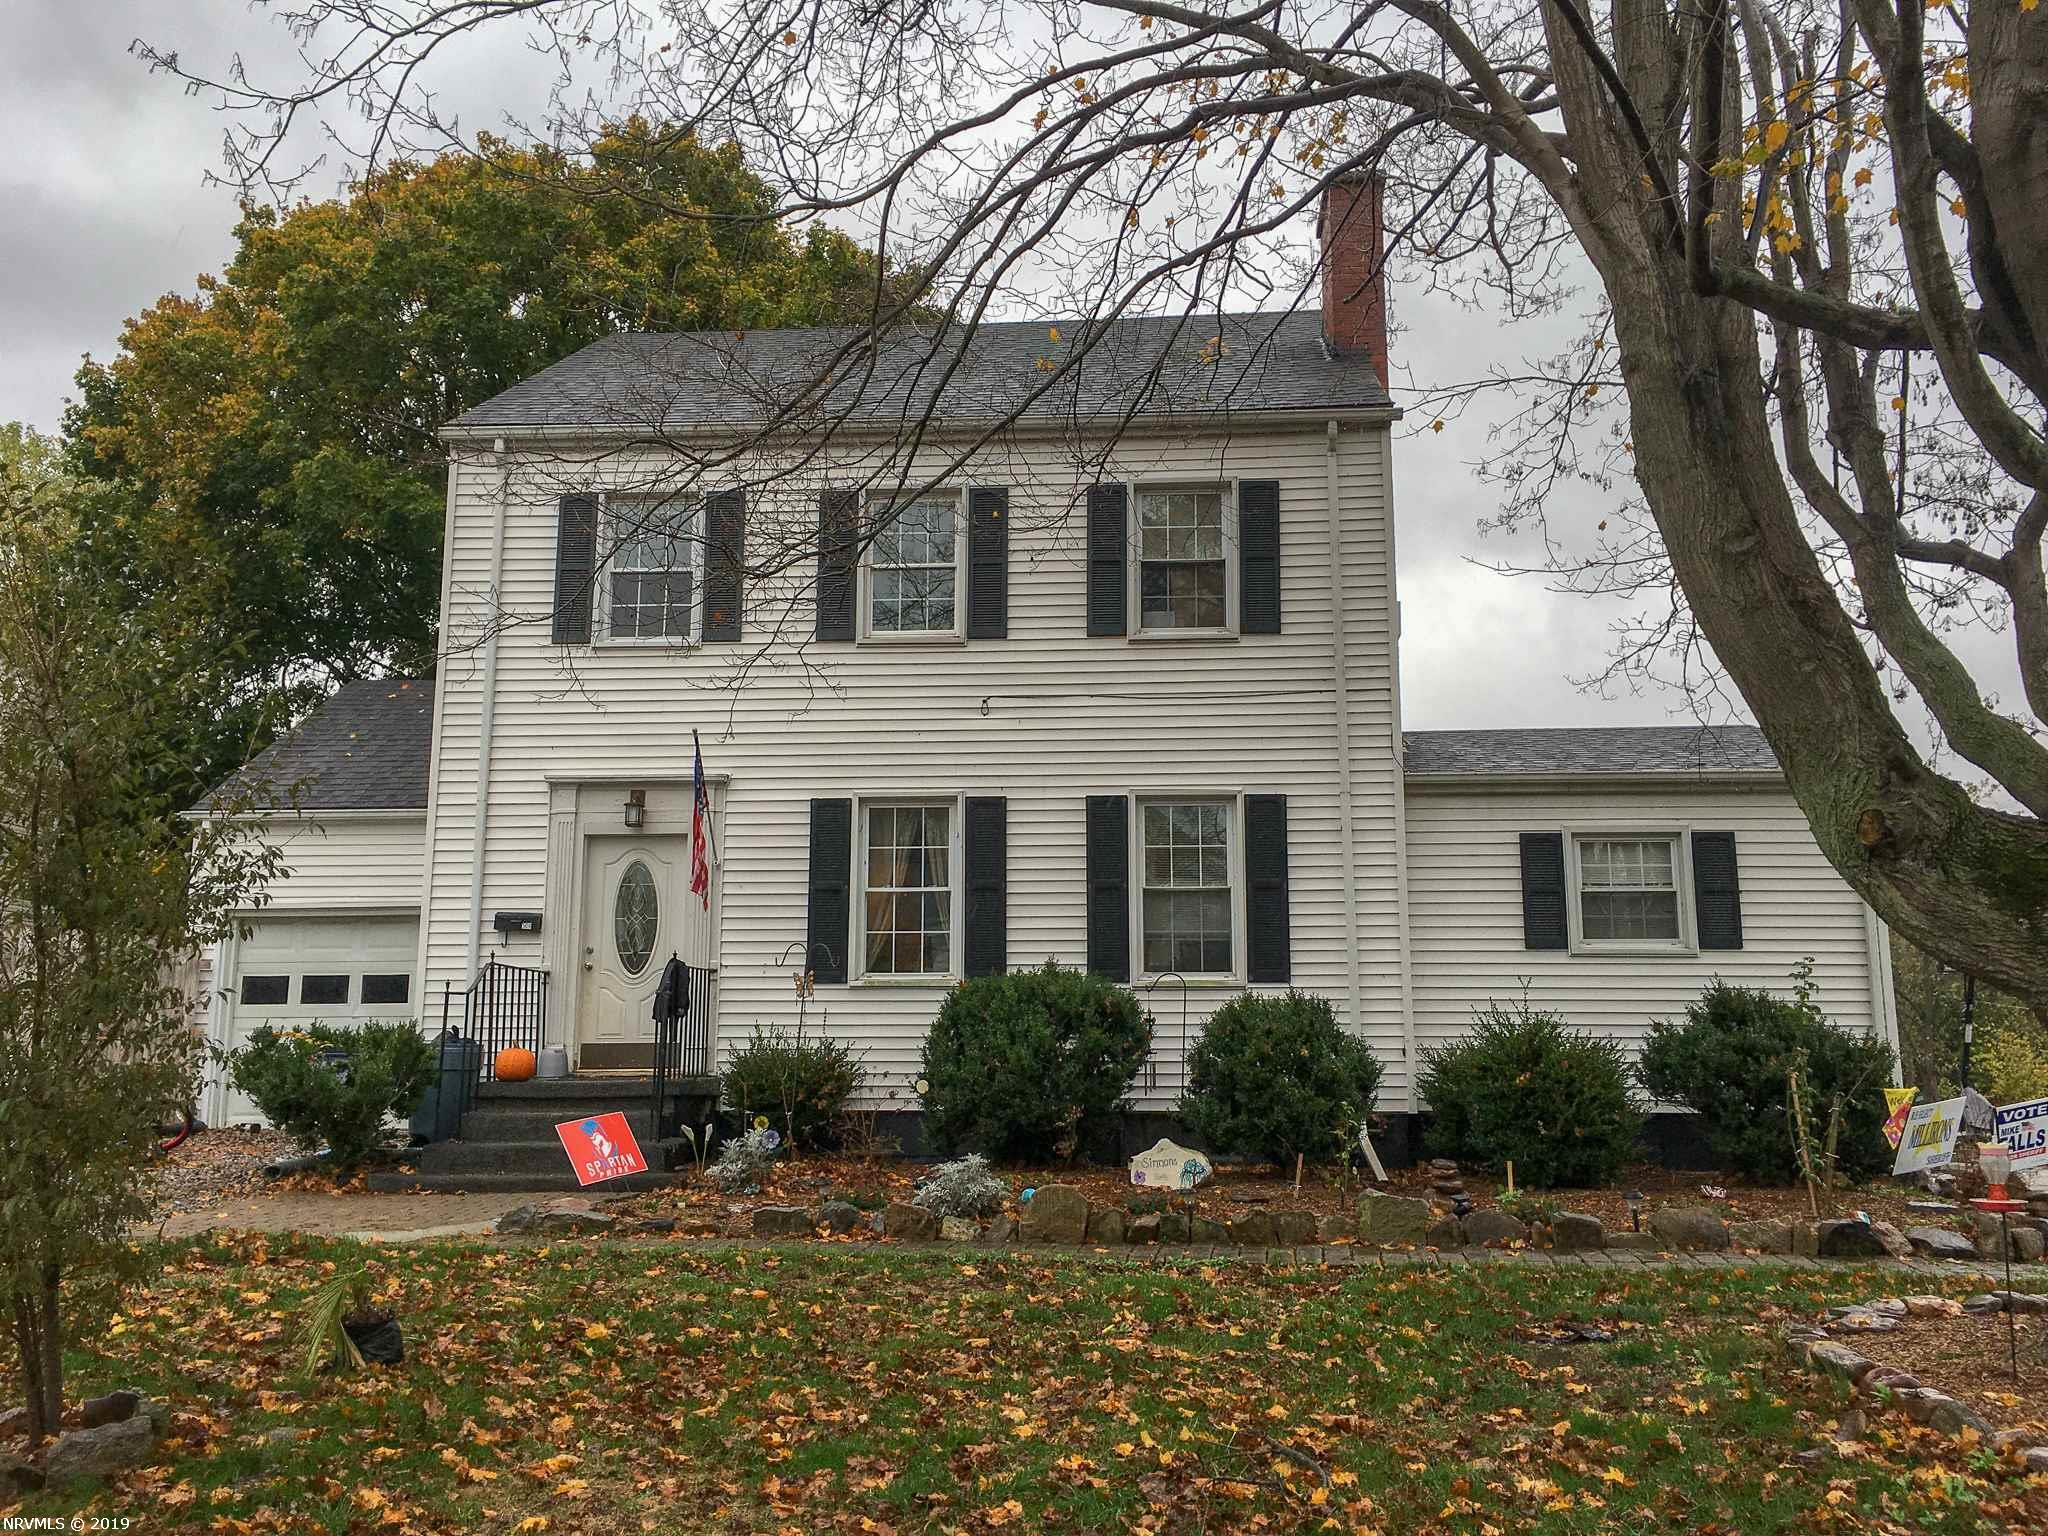 Two Story Colonial with tons of potential in sought after King Heights neighborhood! Large half acre lot. Original hardwood floors throughout. This is a great opportunity to grow into your forever home for a very reasonable price. Property conveys AS-IS.